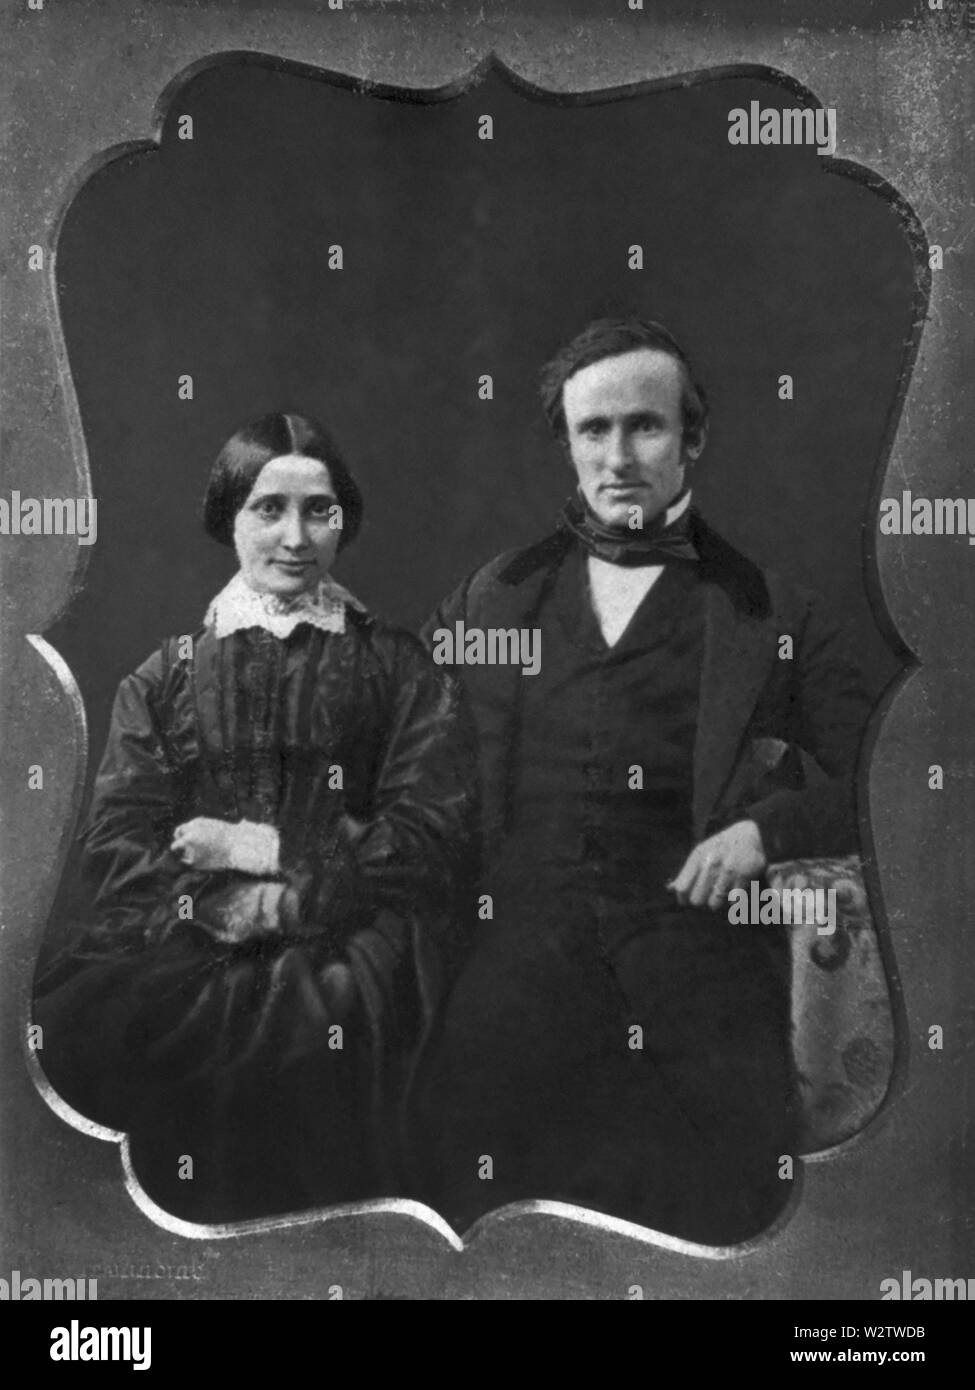 Rutherford B. Hayes (1822-93), 19th President of the United States 1877-81, and his Wife Lucy Webb Hayes (1831-89) on their Wedding Day, Three-Quarter Length Portrait, Daguerreotype, December 30, 1852 - Stock Image